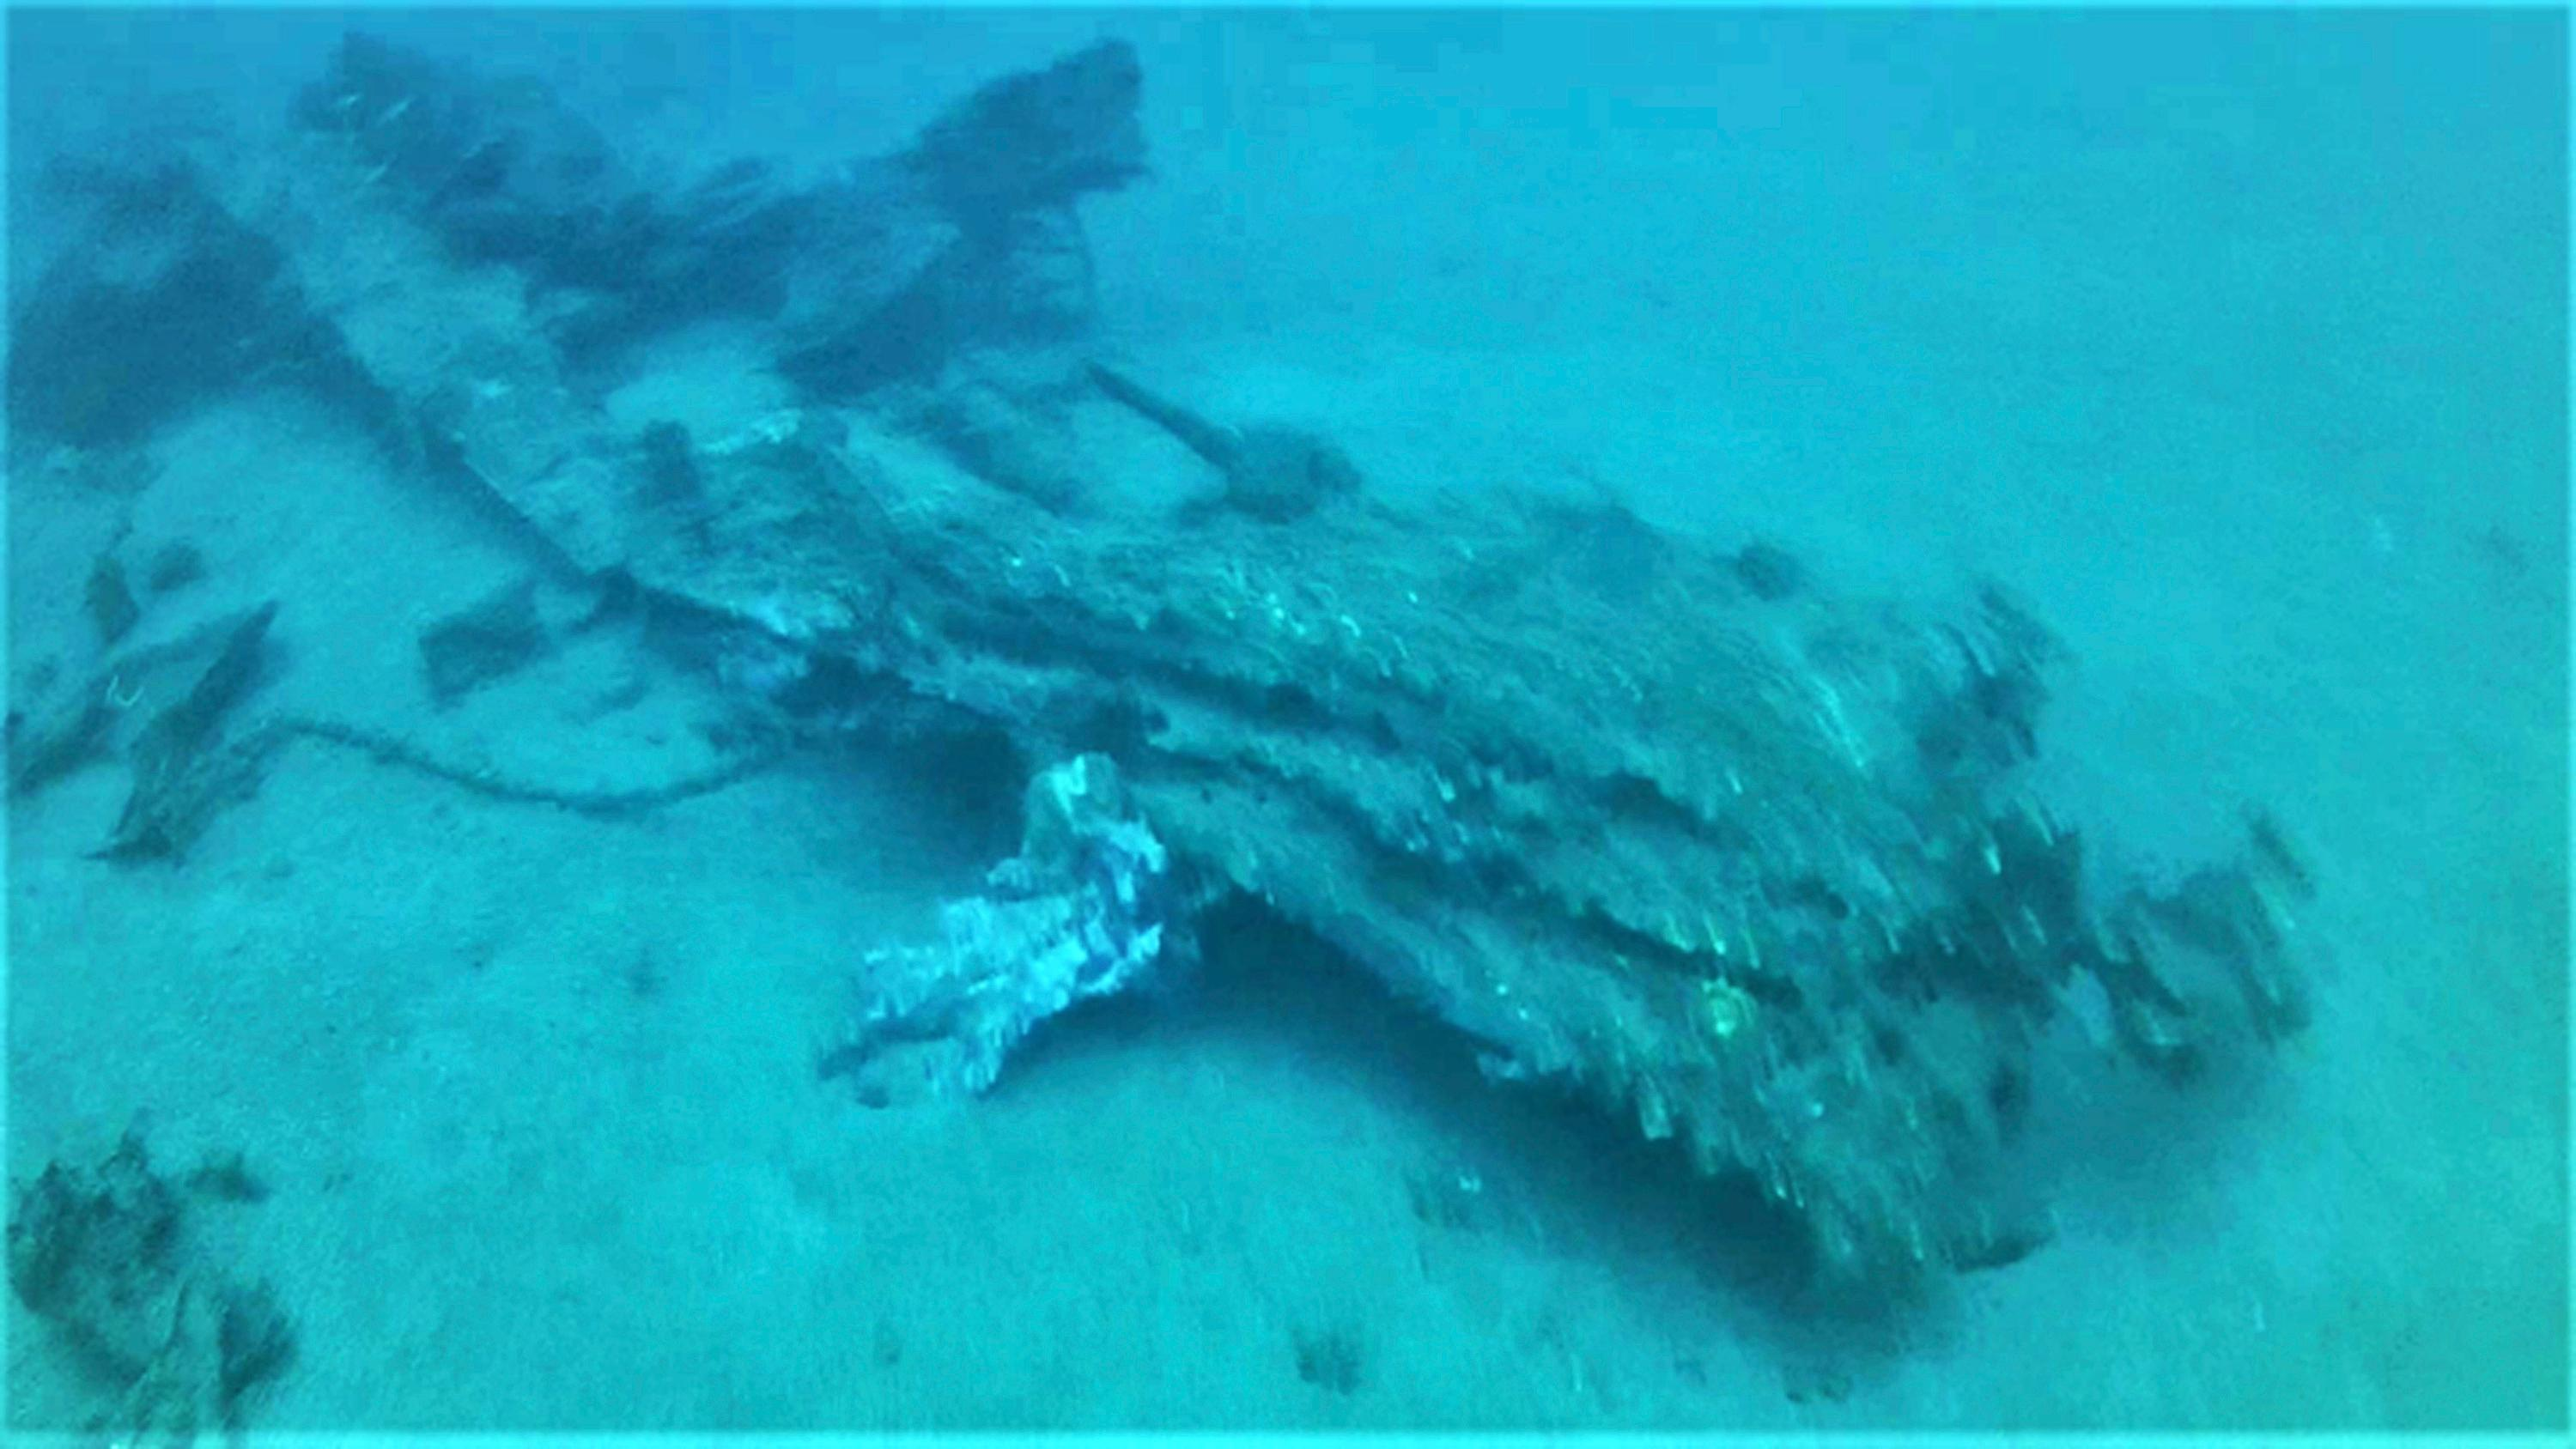 This October 2017 photo from a remote-controlled underwater camera provided by Project Recover shows the starboard landing gear and a wing fragment of a B-24 bomber that crashed in Hansa Bay in what is now Papua New Guinea during World War II. The volunteer group Project Recover announced earlier this week the plane carrying an 2nd lieutenant from Livermore, Calif., and 10 others was located beneath 213 feet (64 meters) of water. Relatives of 2nd Lt. Tom Kelly got word after almost 74 years. (Project Recover via AP)